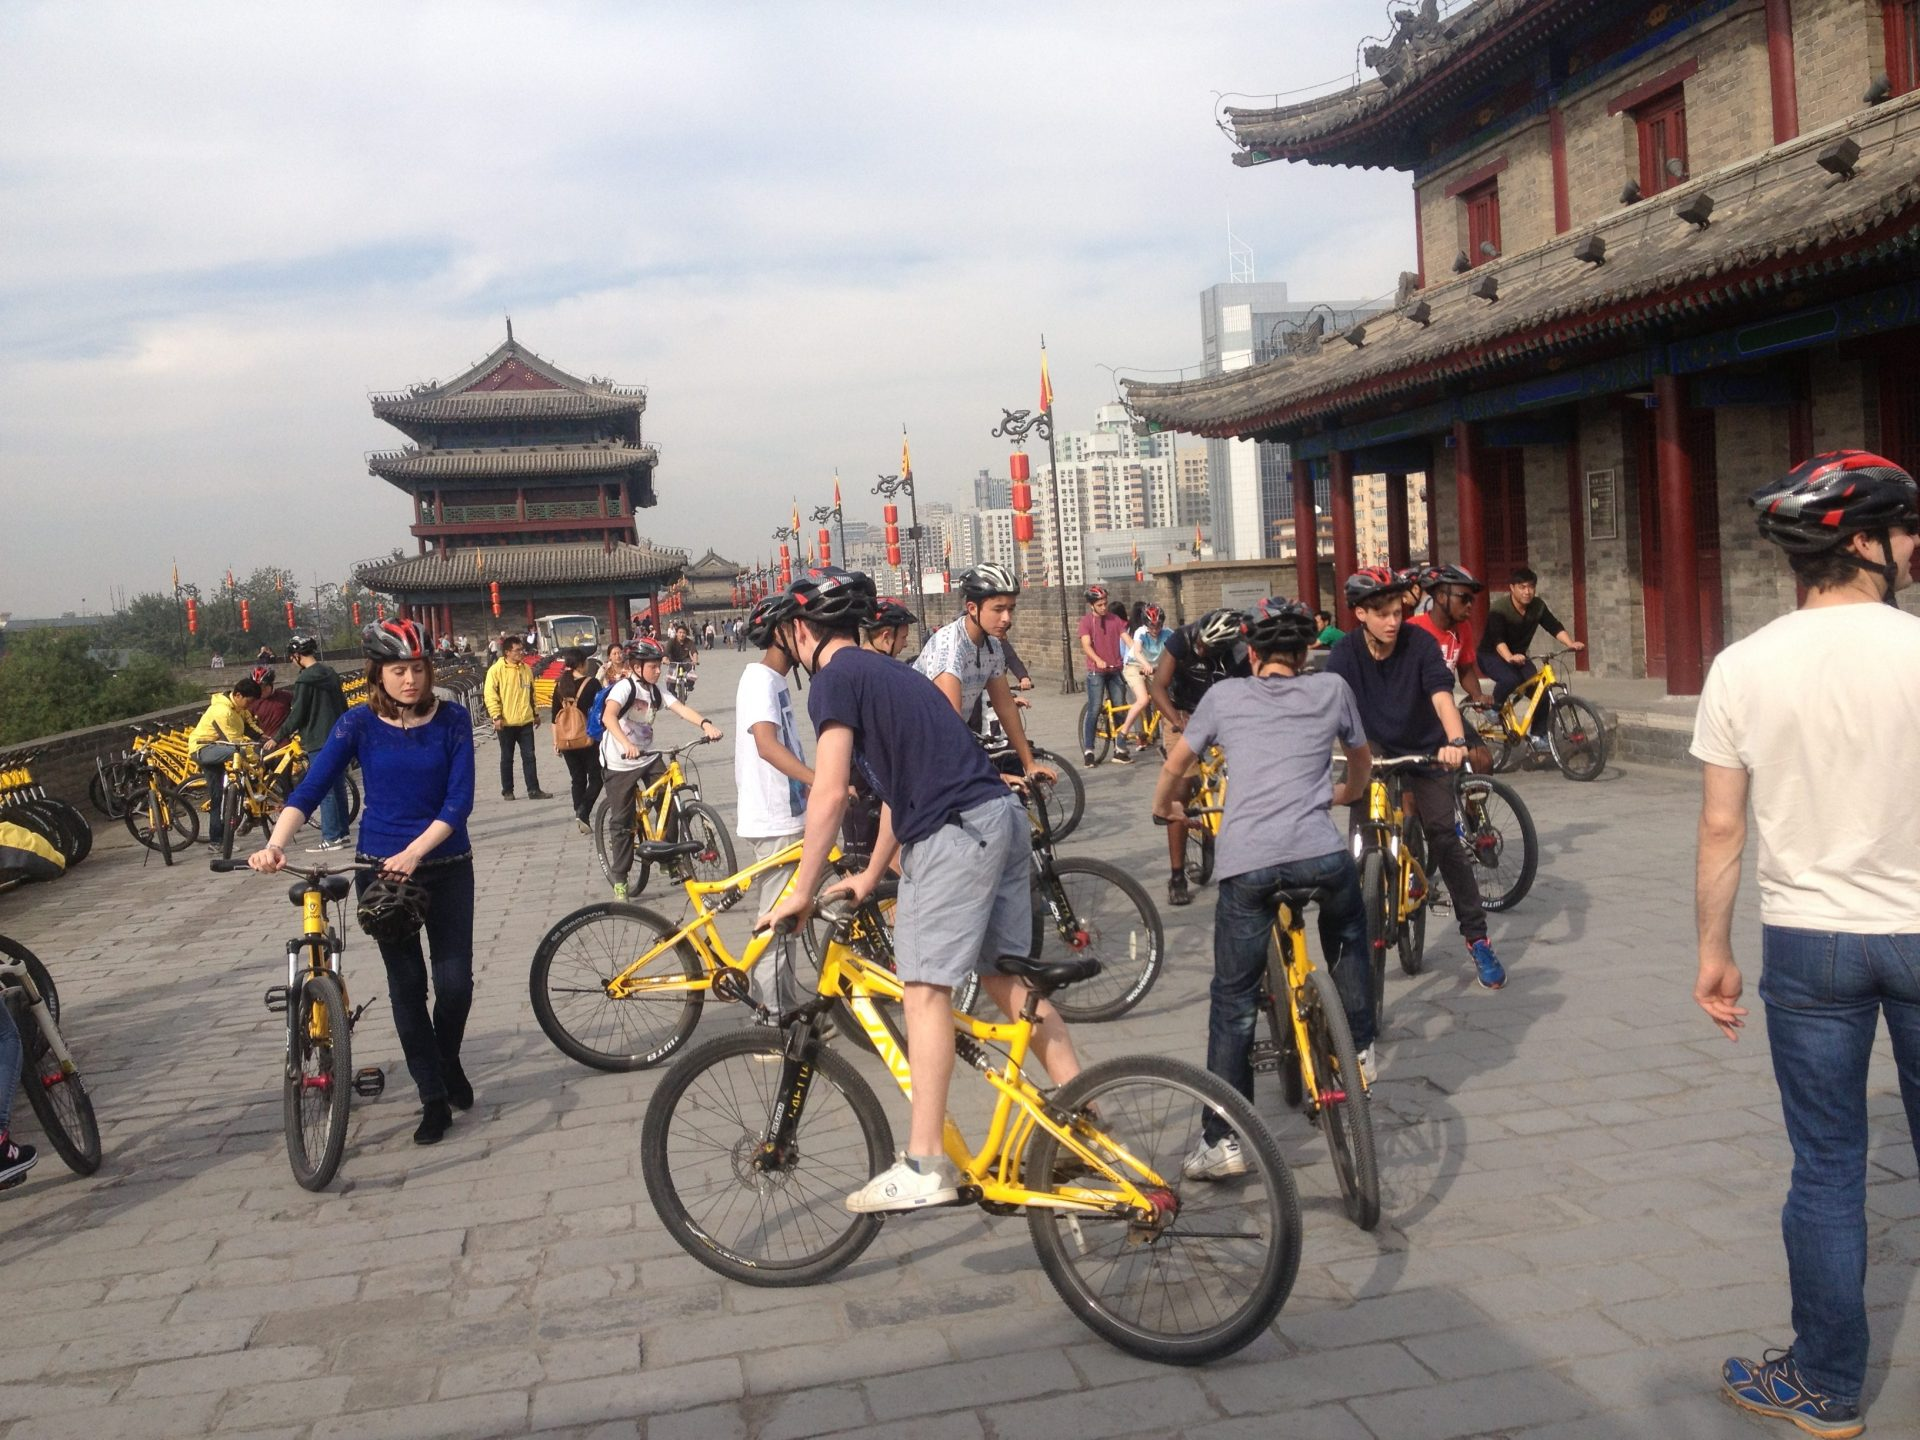 STEM faculty-led culture school trip to China